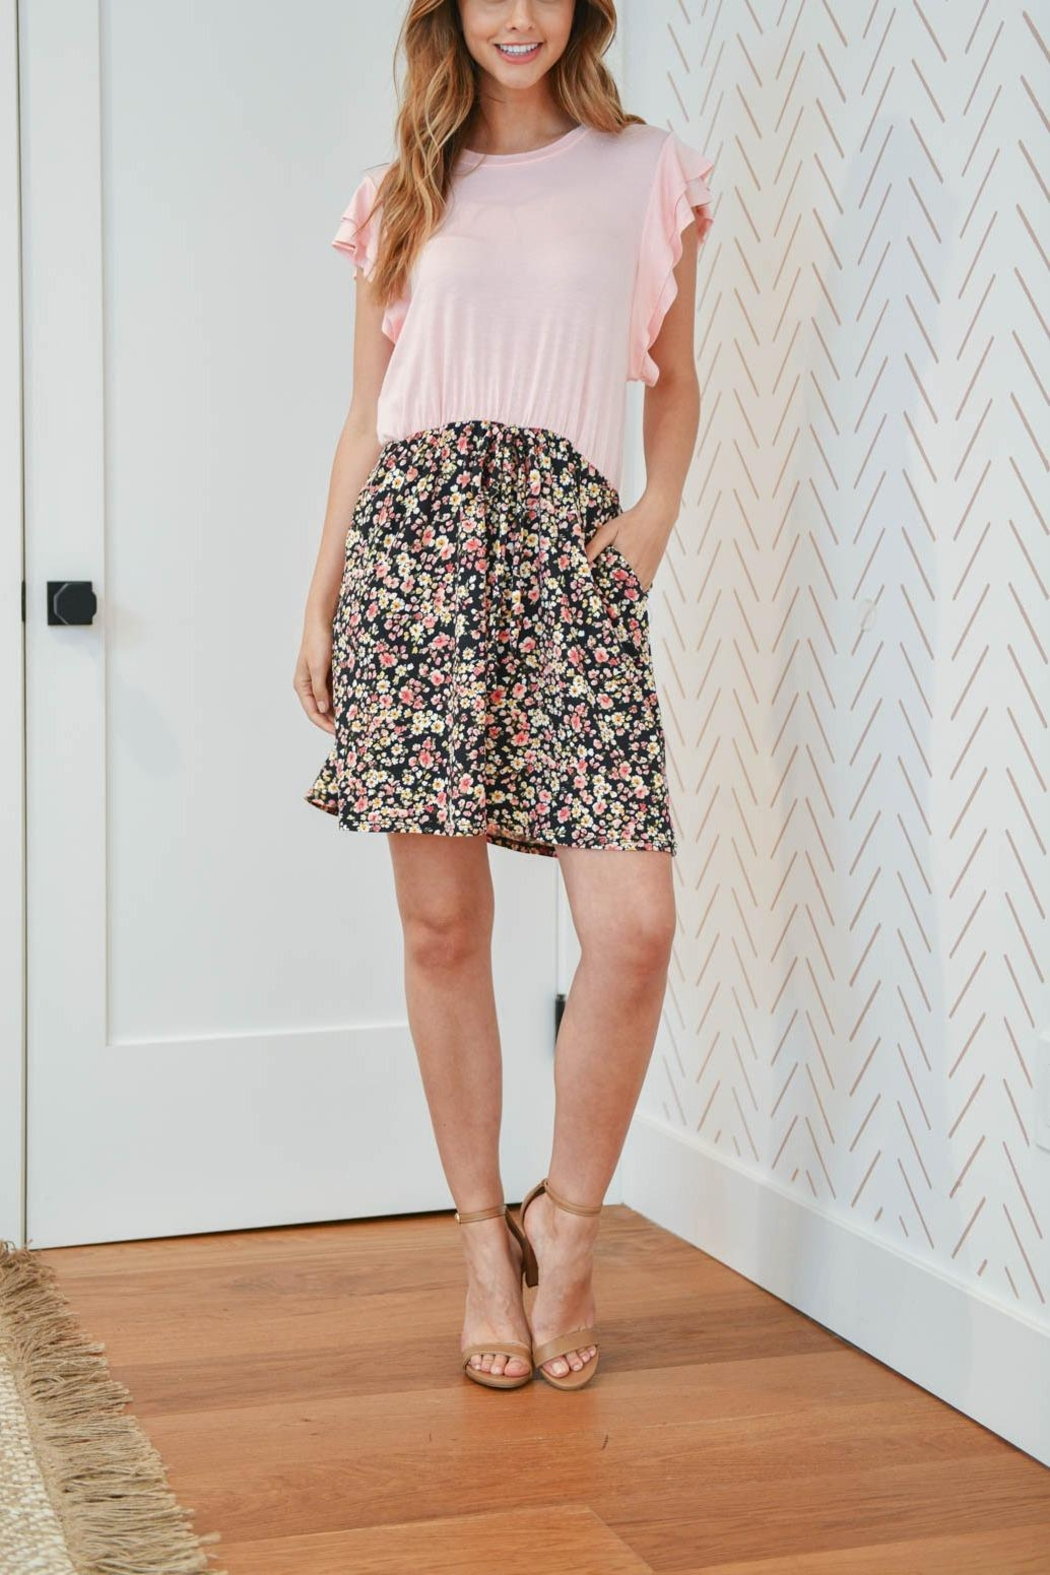 Riah Fashion Cap-Sleeve-Solid-Top-Floral-Contrast-Dress - Side Cropped Image